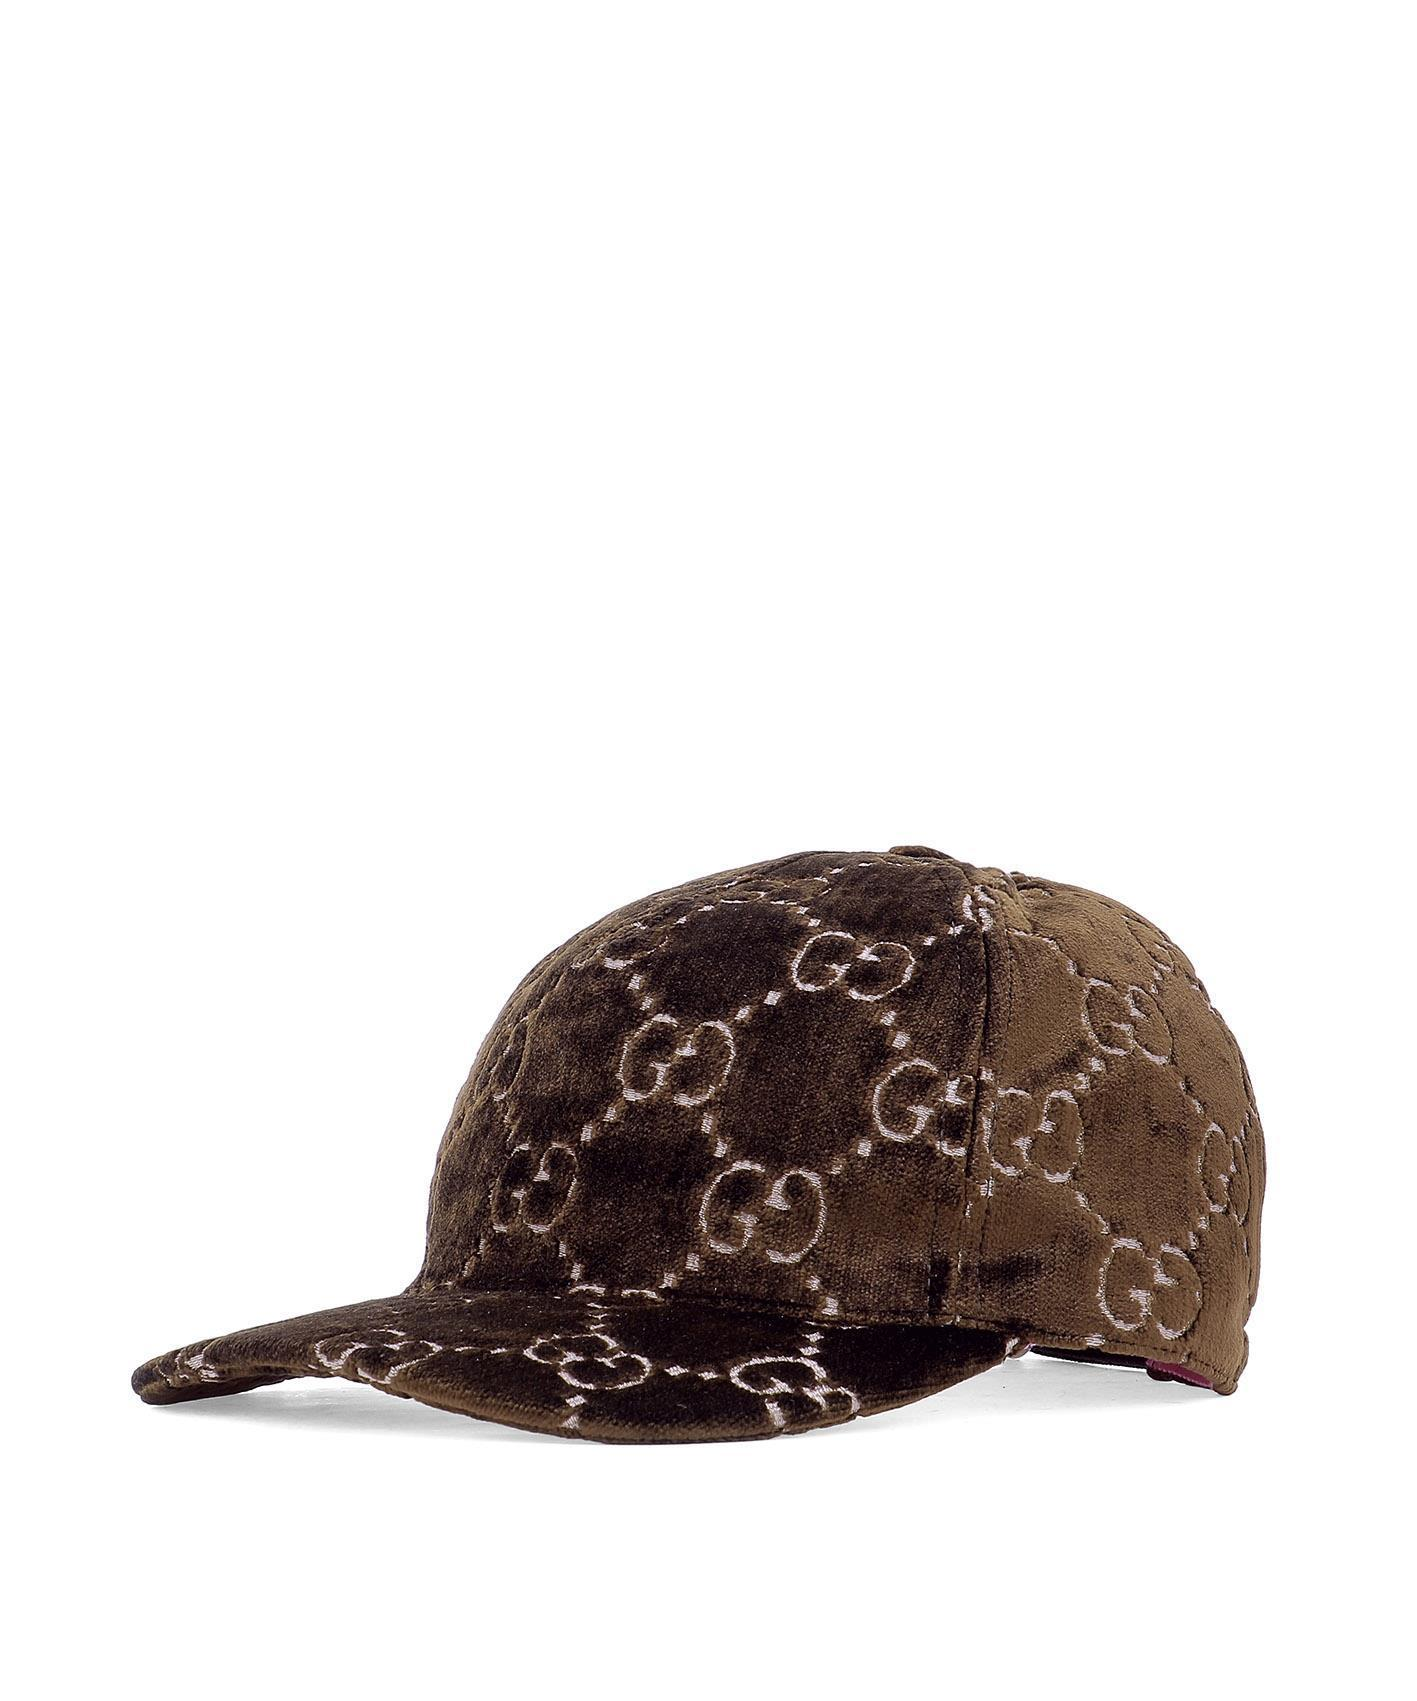 3b3a81a87 Gucci Gg Supreme Velvet Snapback Hat In Brown